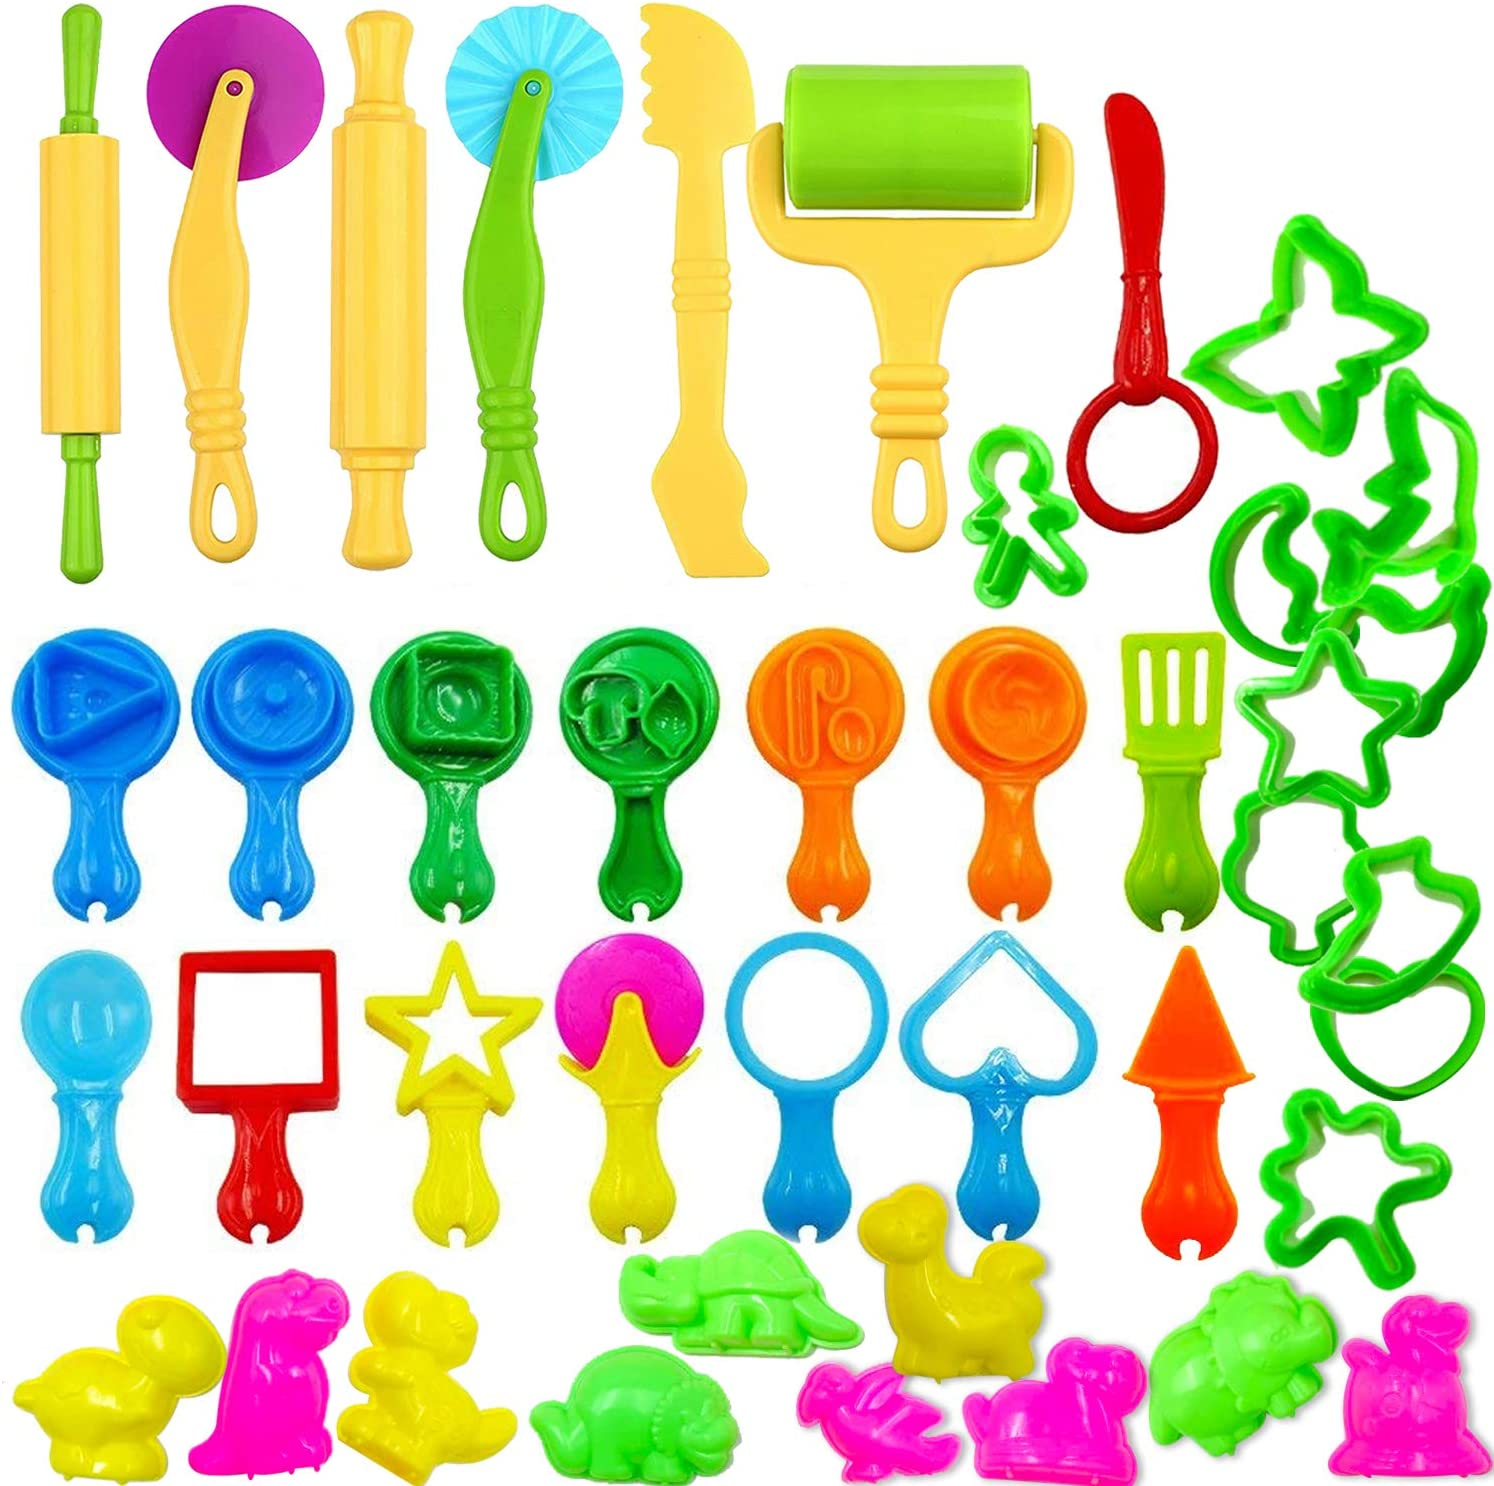 45 Pieces Lowest Long-awaited price challenge Clay Dough Tools Kit w Extrud Animal Shapes with